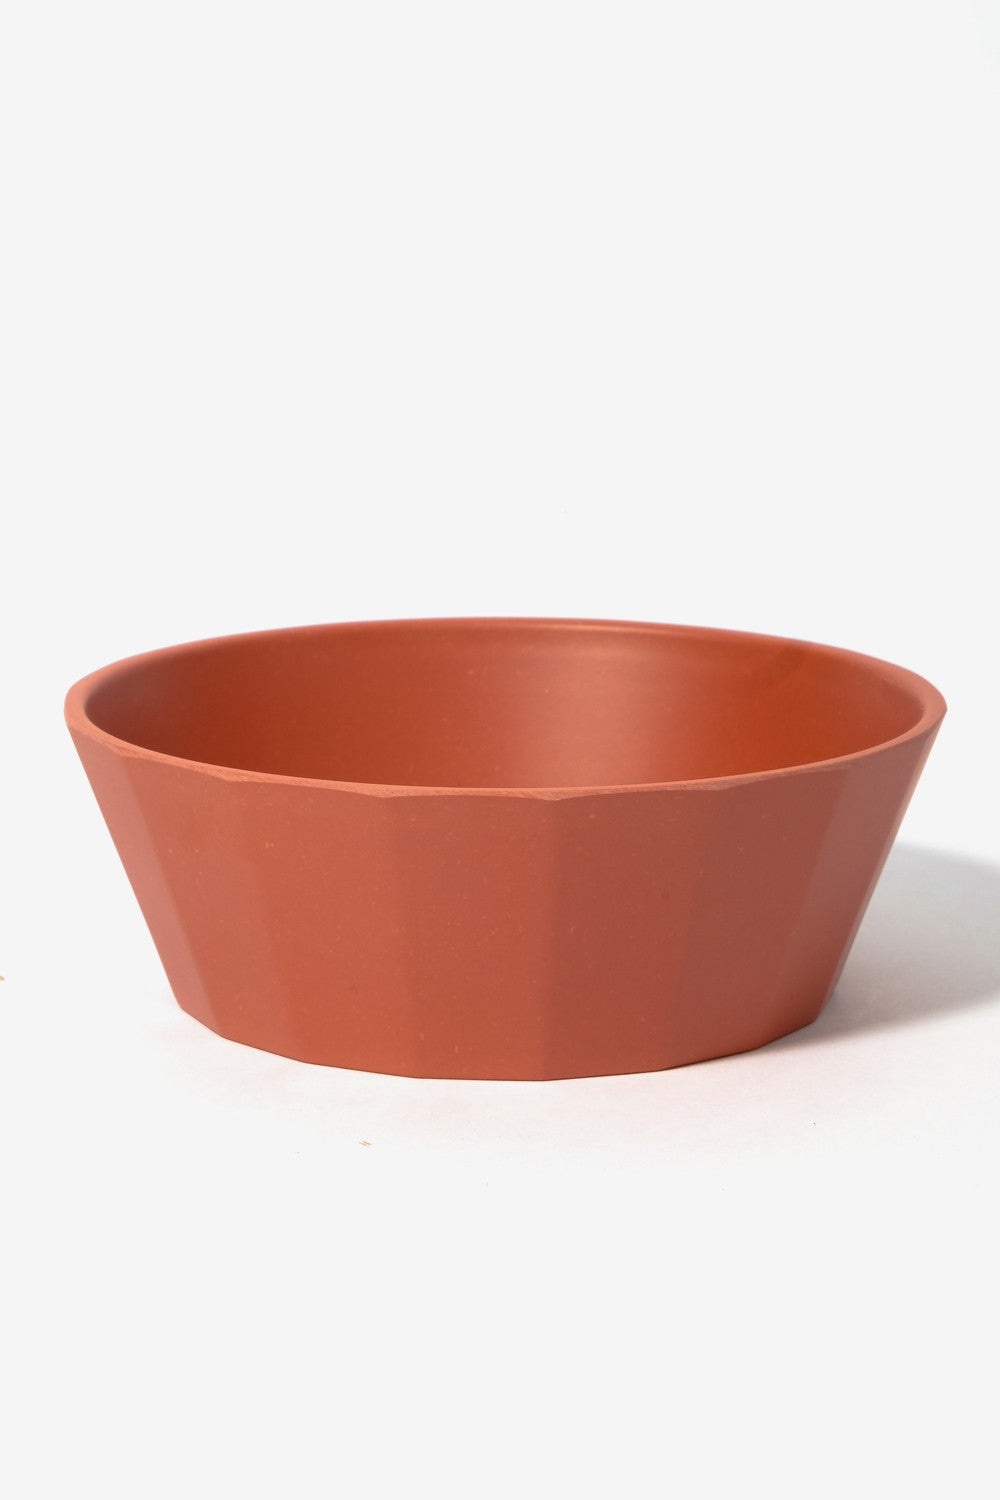 ALFRESCO Bowl Red, Tableware, Kinto - Six and Sons